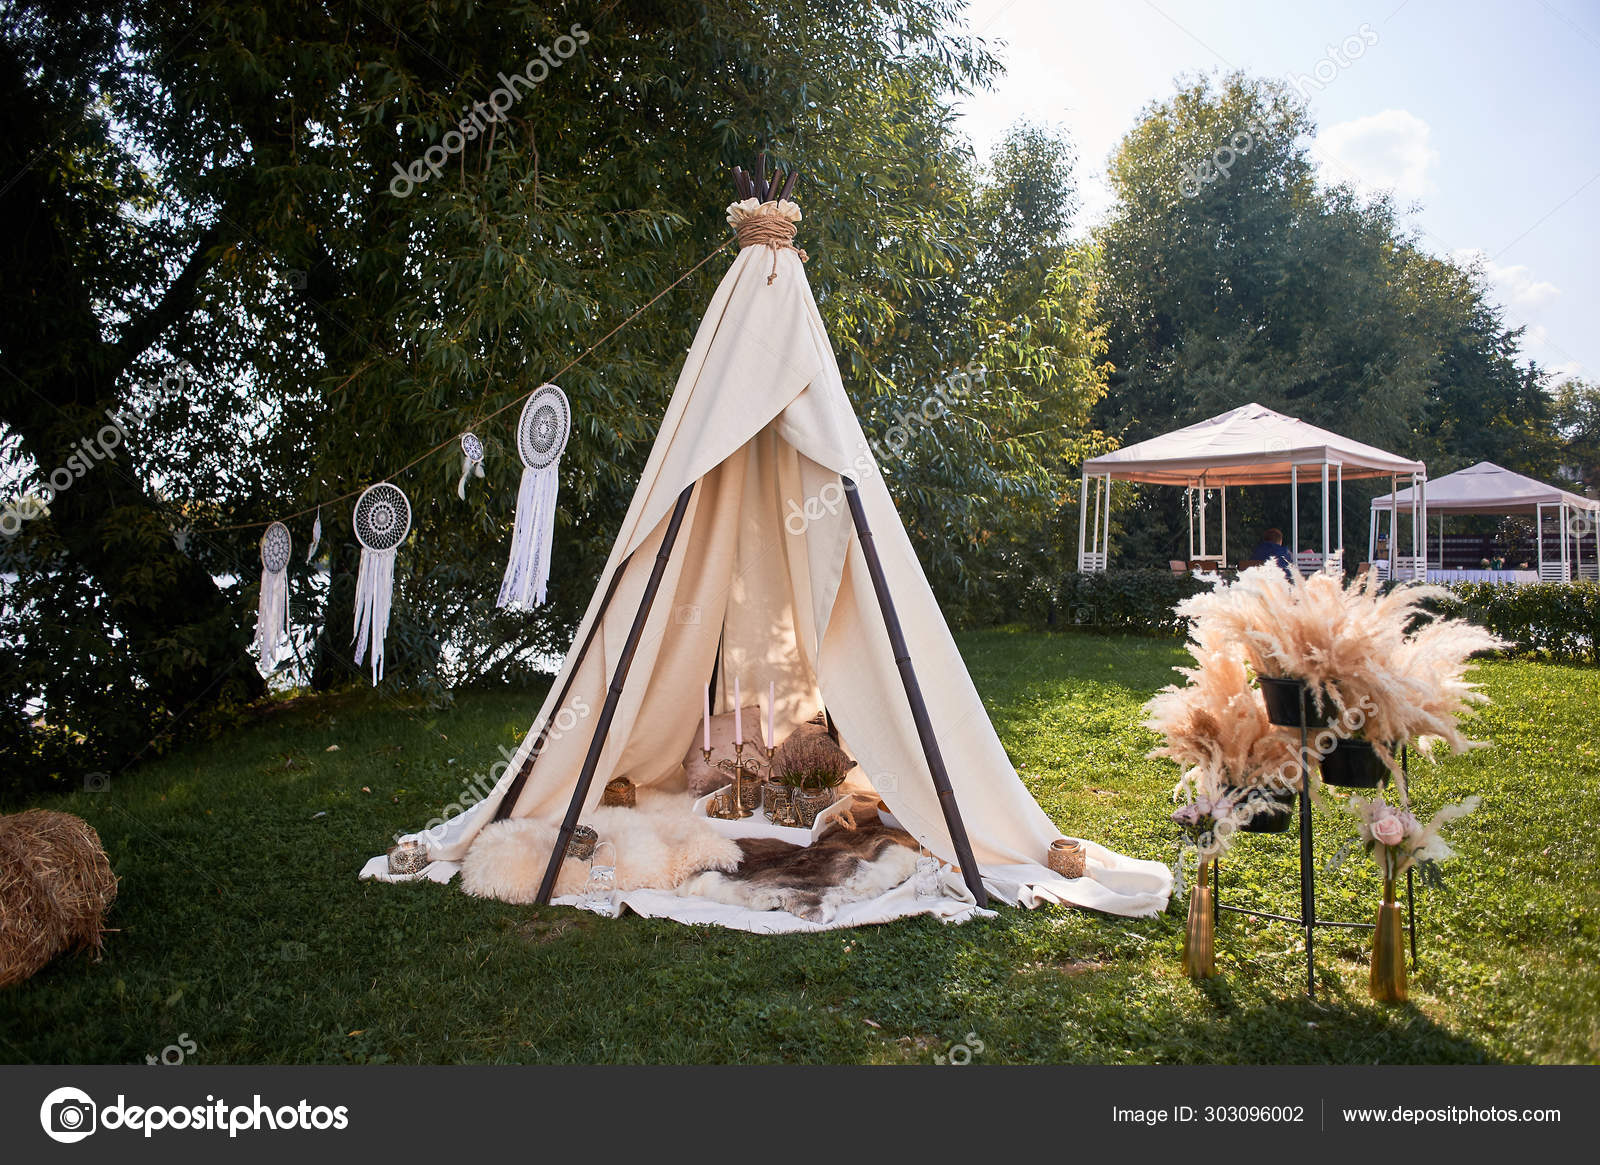 Boho Style Wedding Decoration Ease And Simplicity A Bamboo Hut Covered With A Linen Cloth Decorative Place Outdoor Recreation Glamping Stock Photo Image By C Gf2002 Mail Ru 303096002